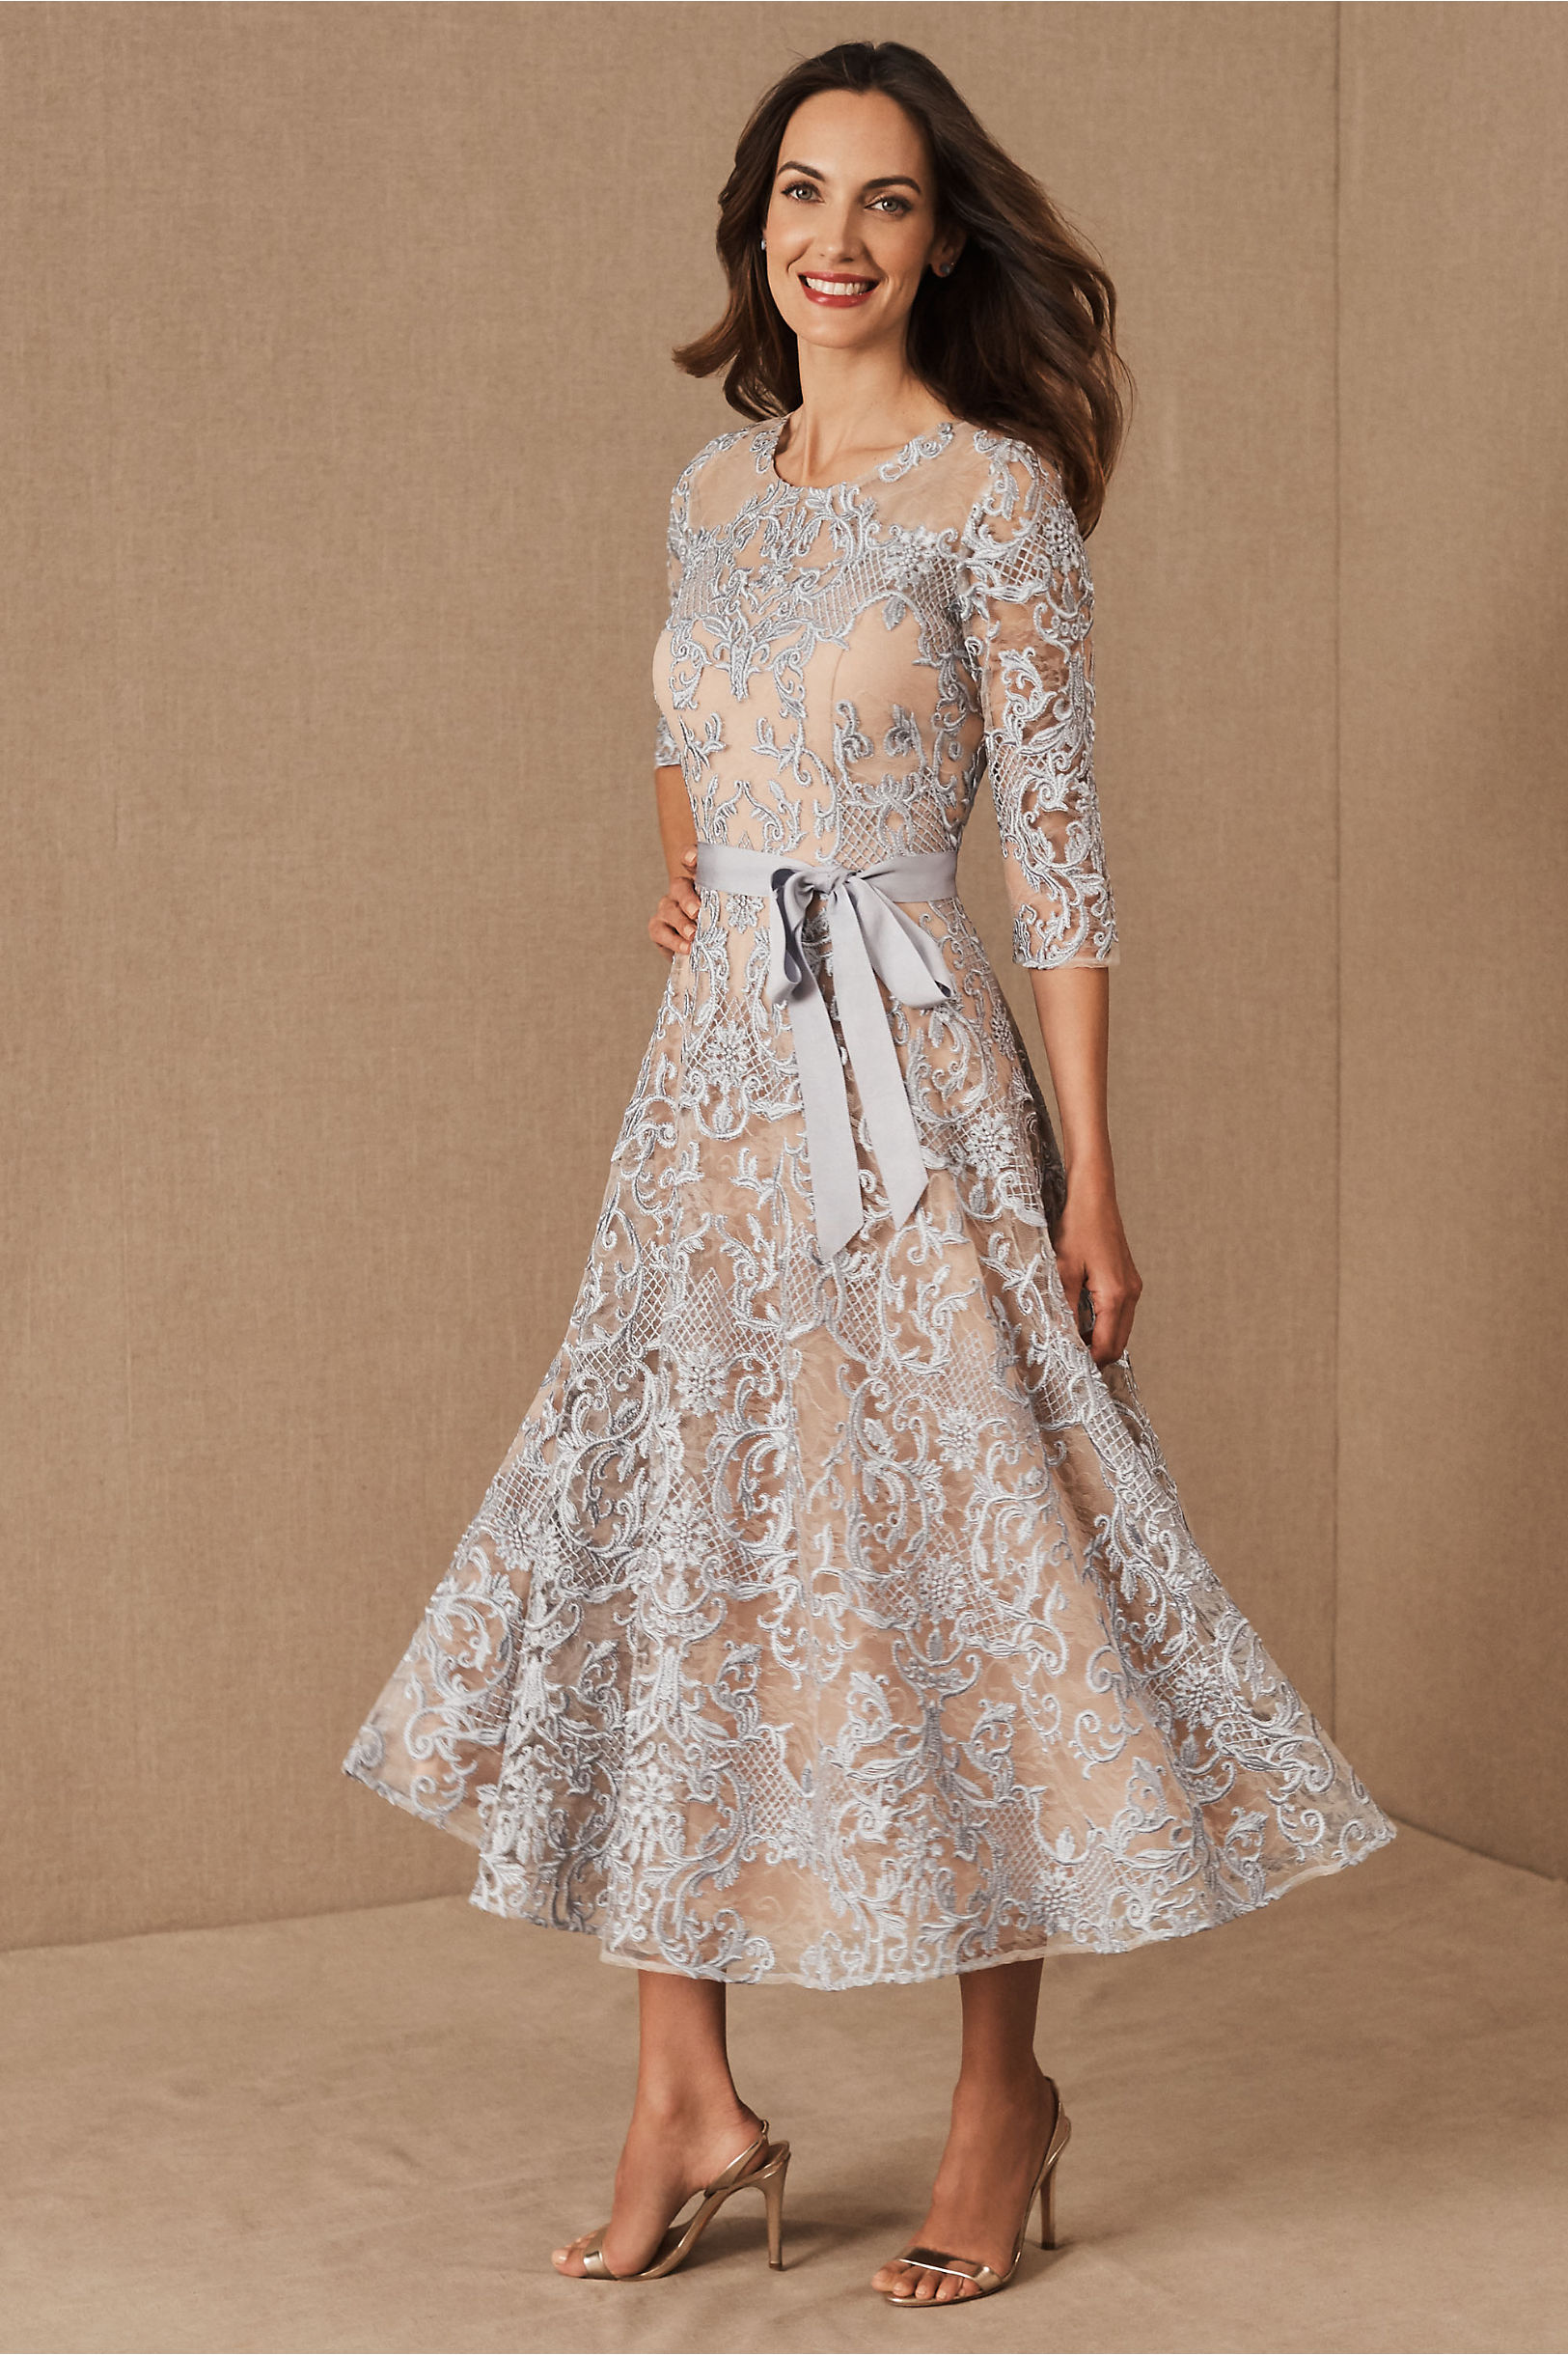 What Did Women Wear in the 1950s? 1950s Fashion Guide BHLDN Linden Dress $280.00 AT vintagedancer.com